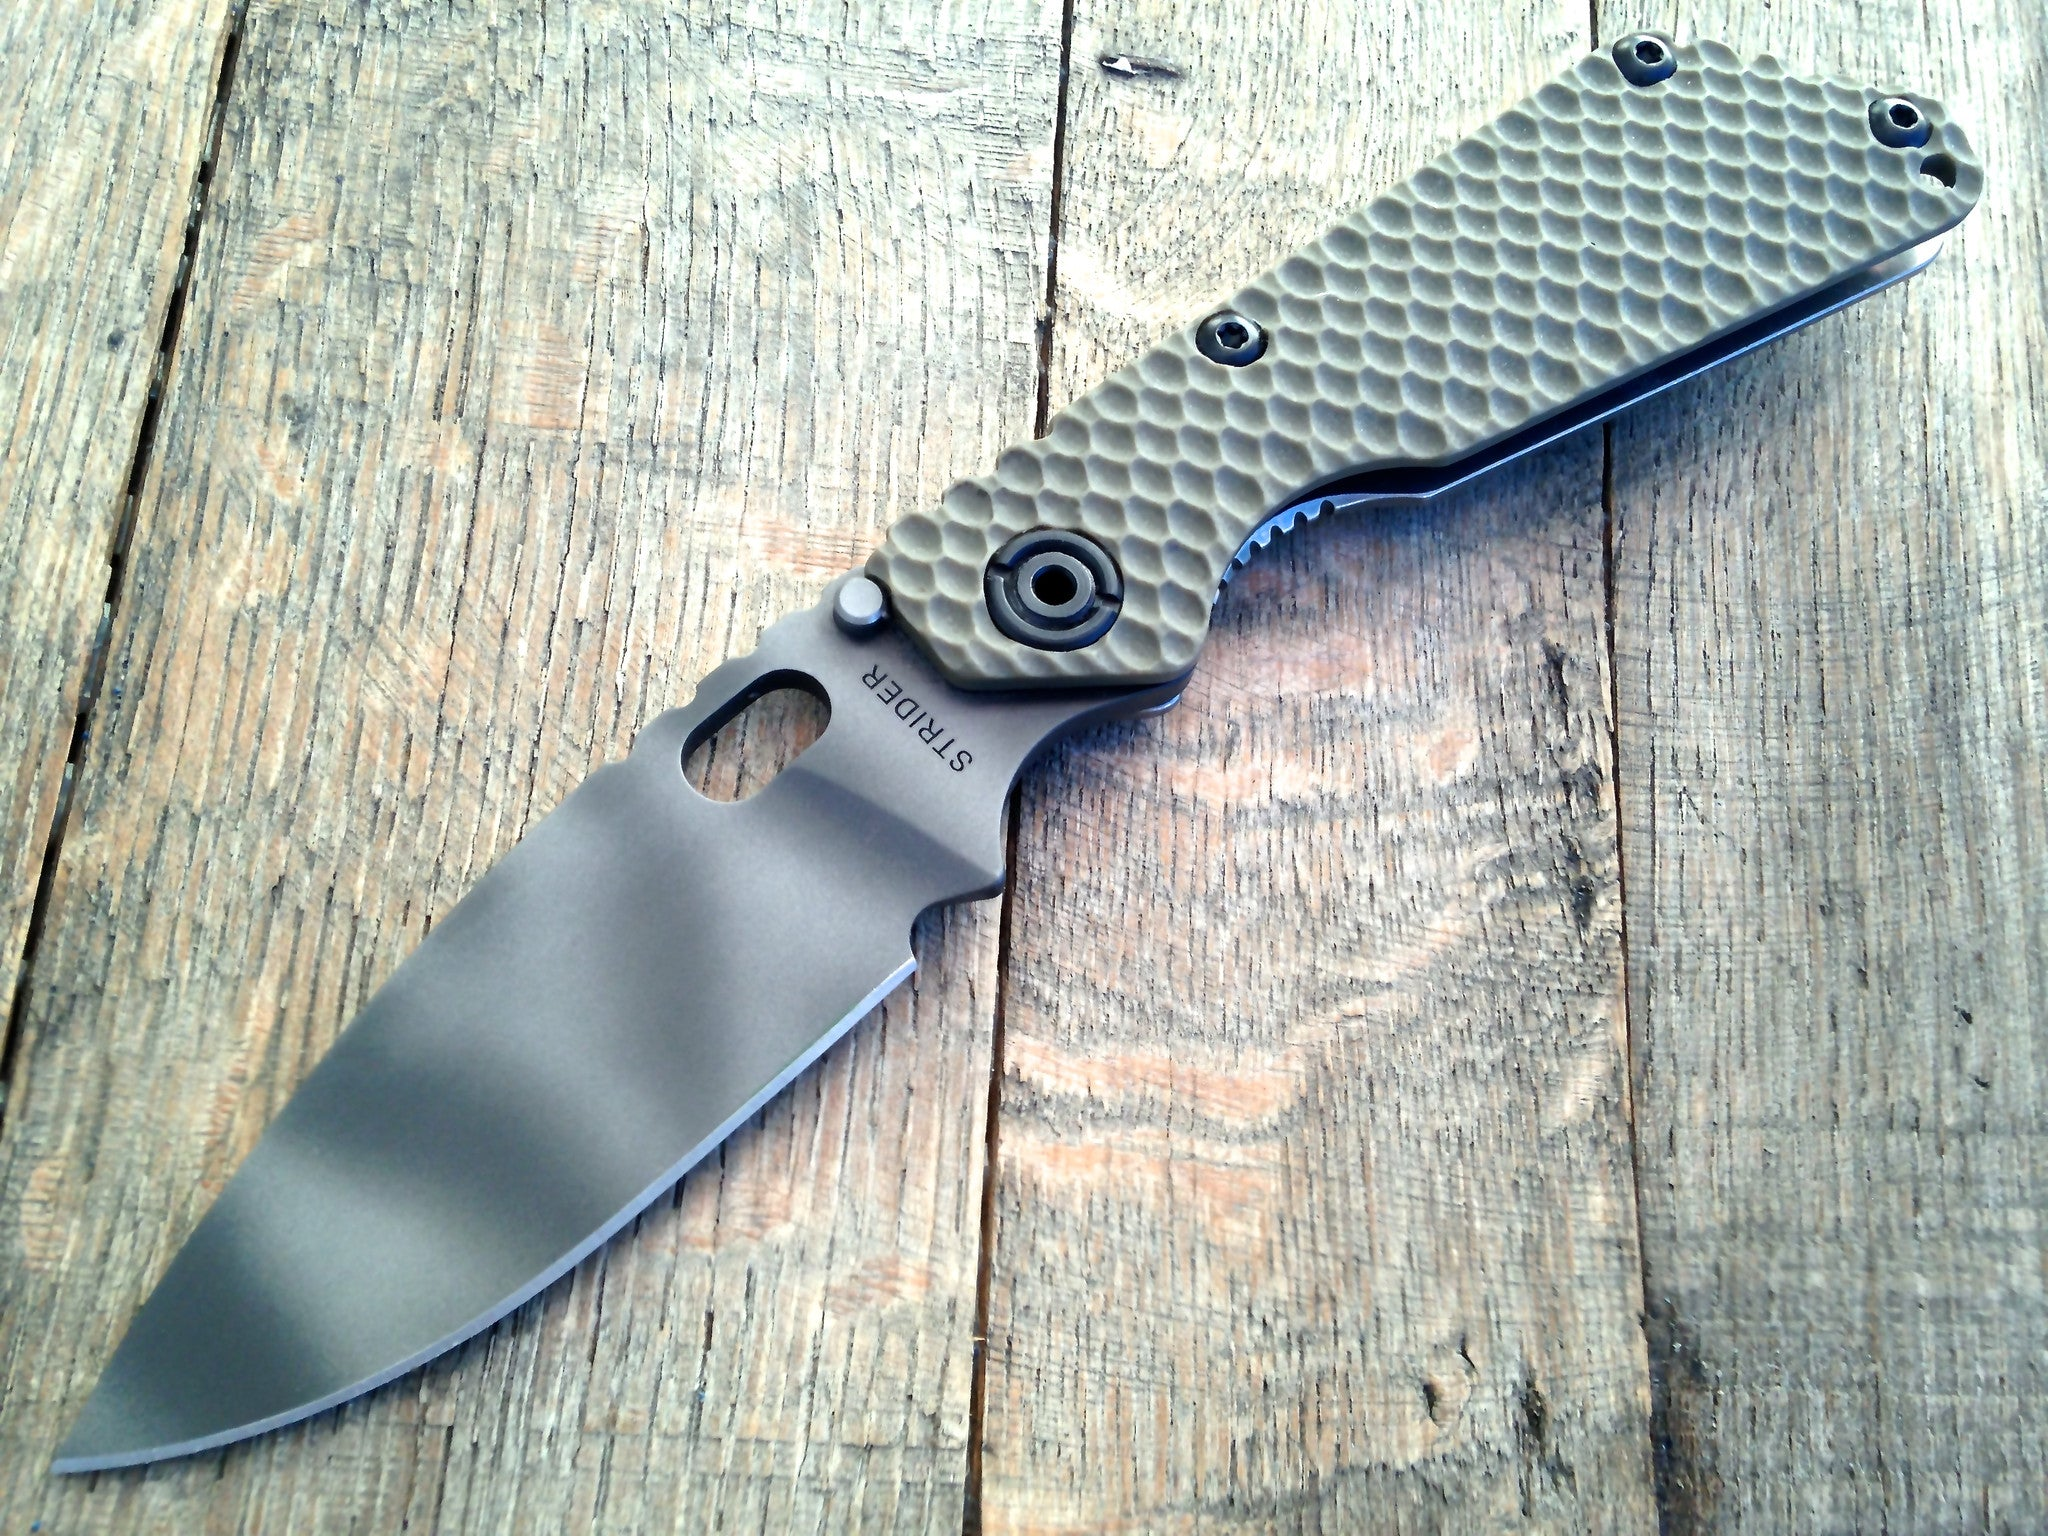 Strider SnG Gunner Grip Green (Striped) S30V - GearBarrel.com